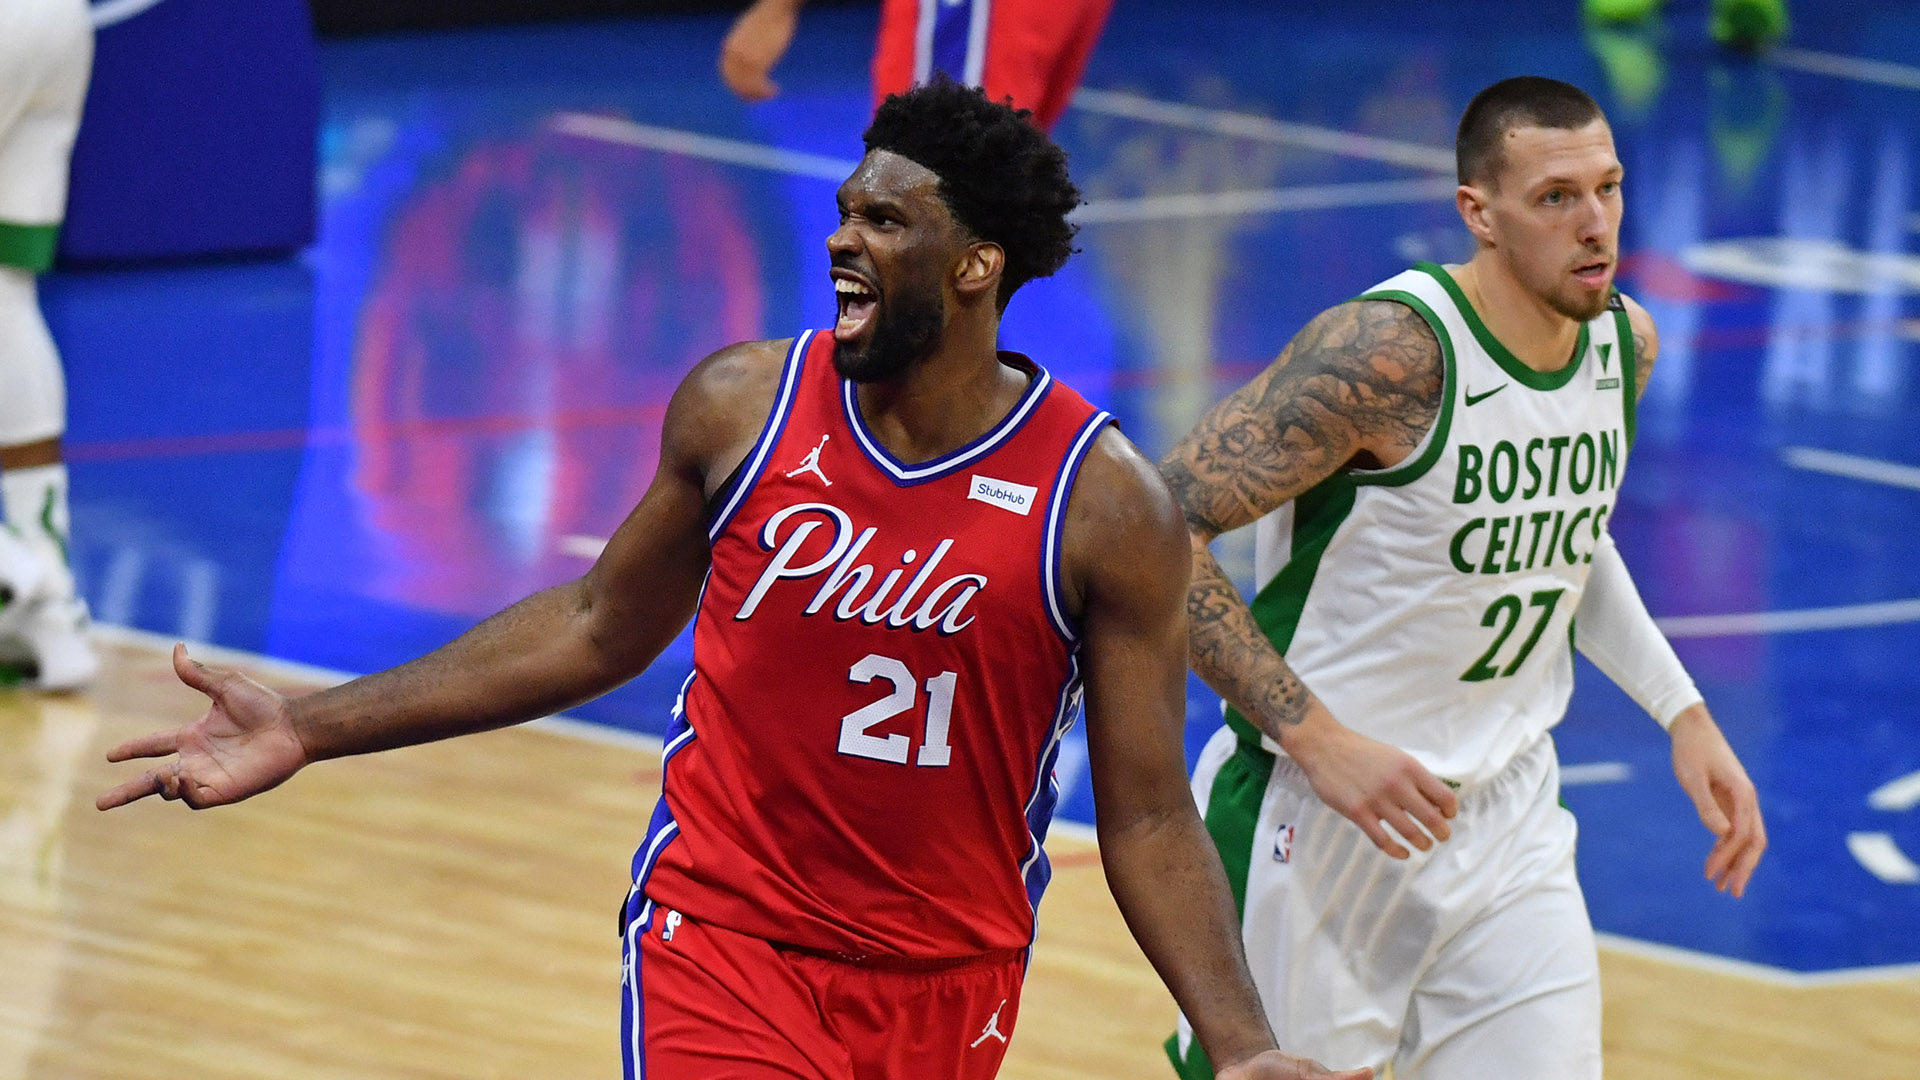 Embiid Delivers As 76ers Spoil Brown's Big Performance